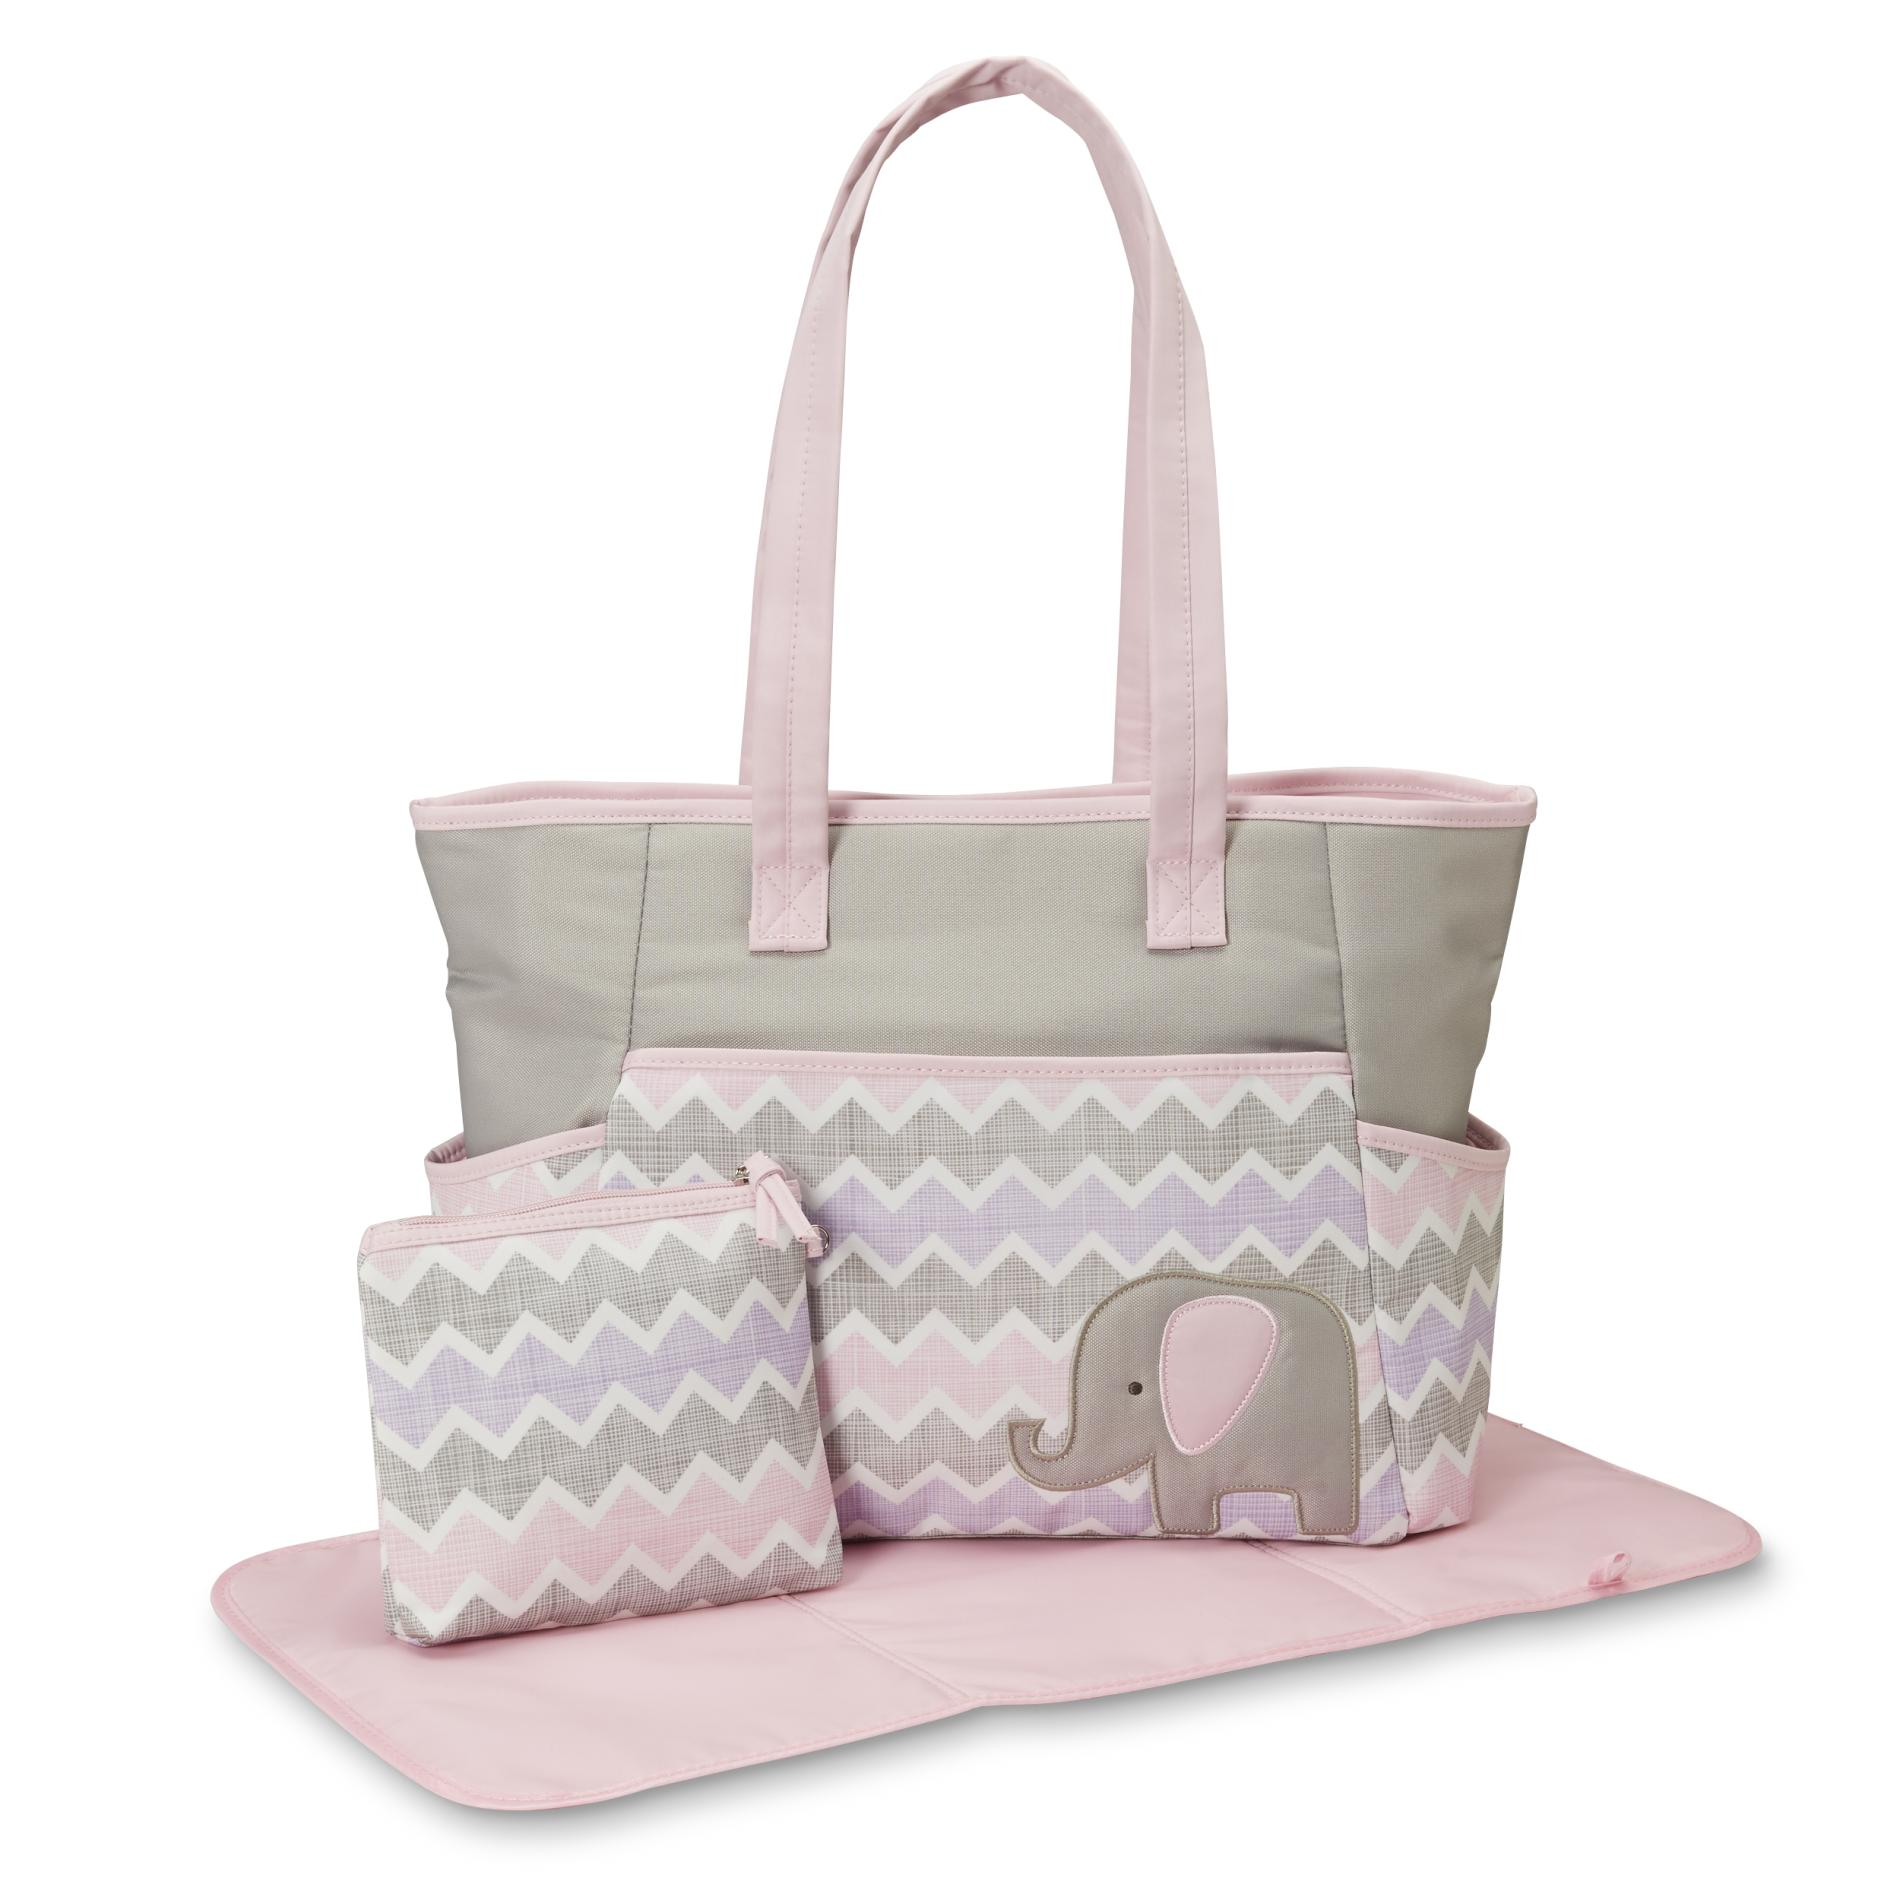 diaper bags for girls tender kisses infant girlsu0027 3-piece diaper bag set - elephant YUYQSLZ